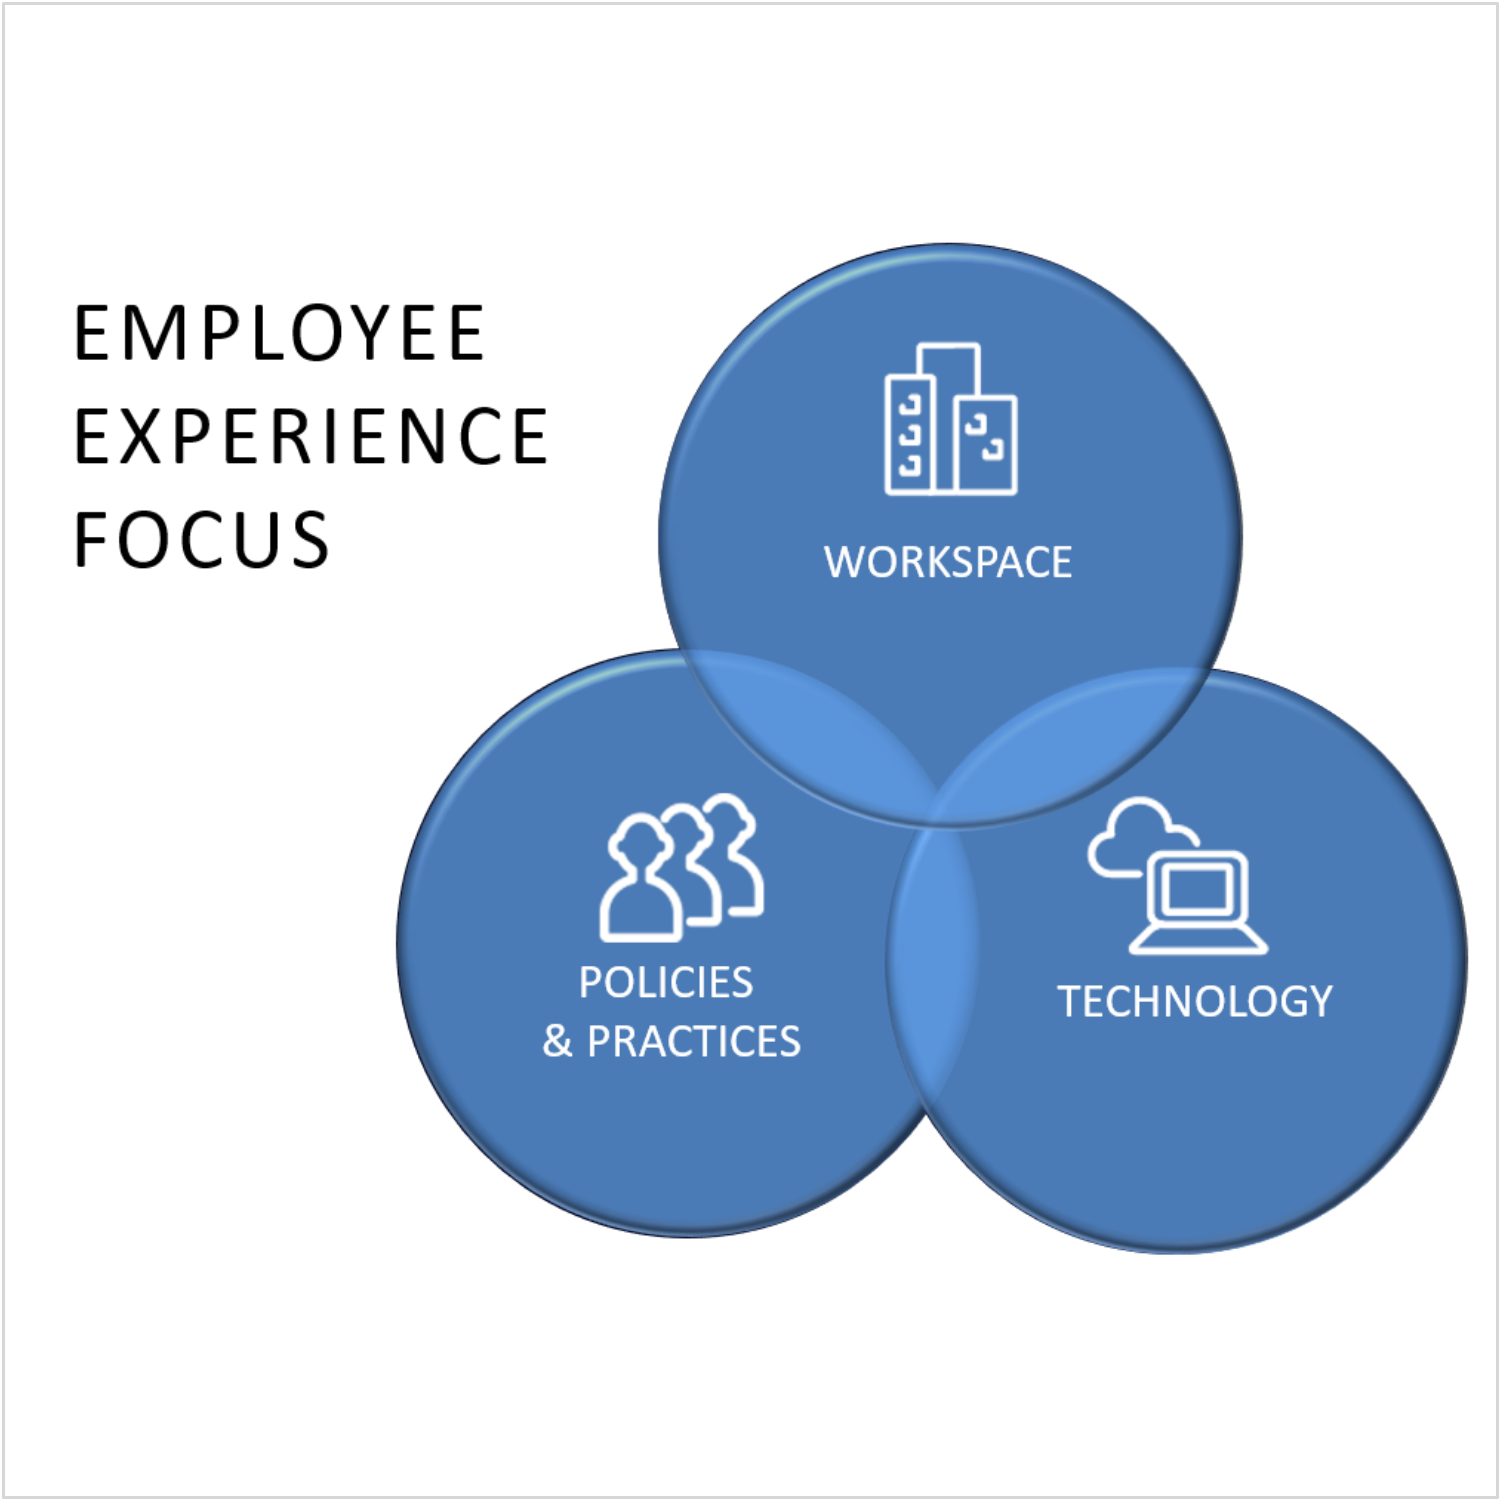 Client-Mazda; employee experience focus